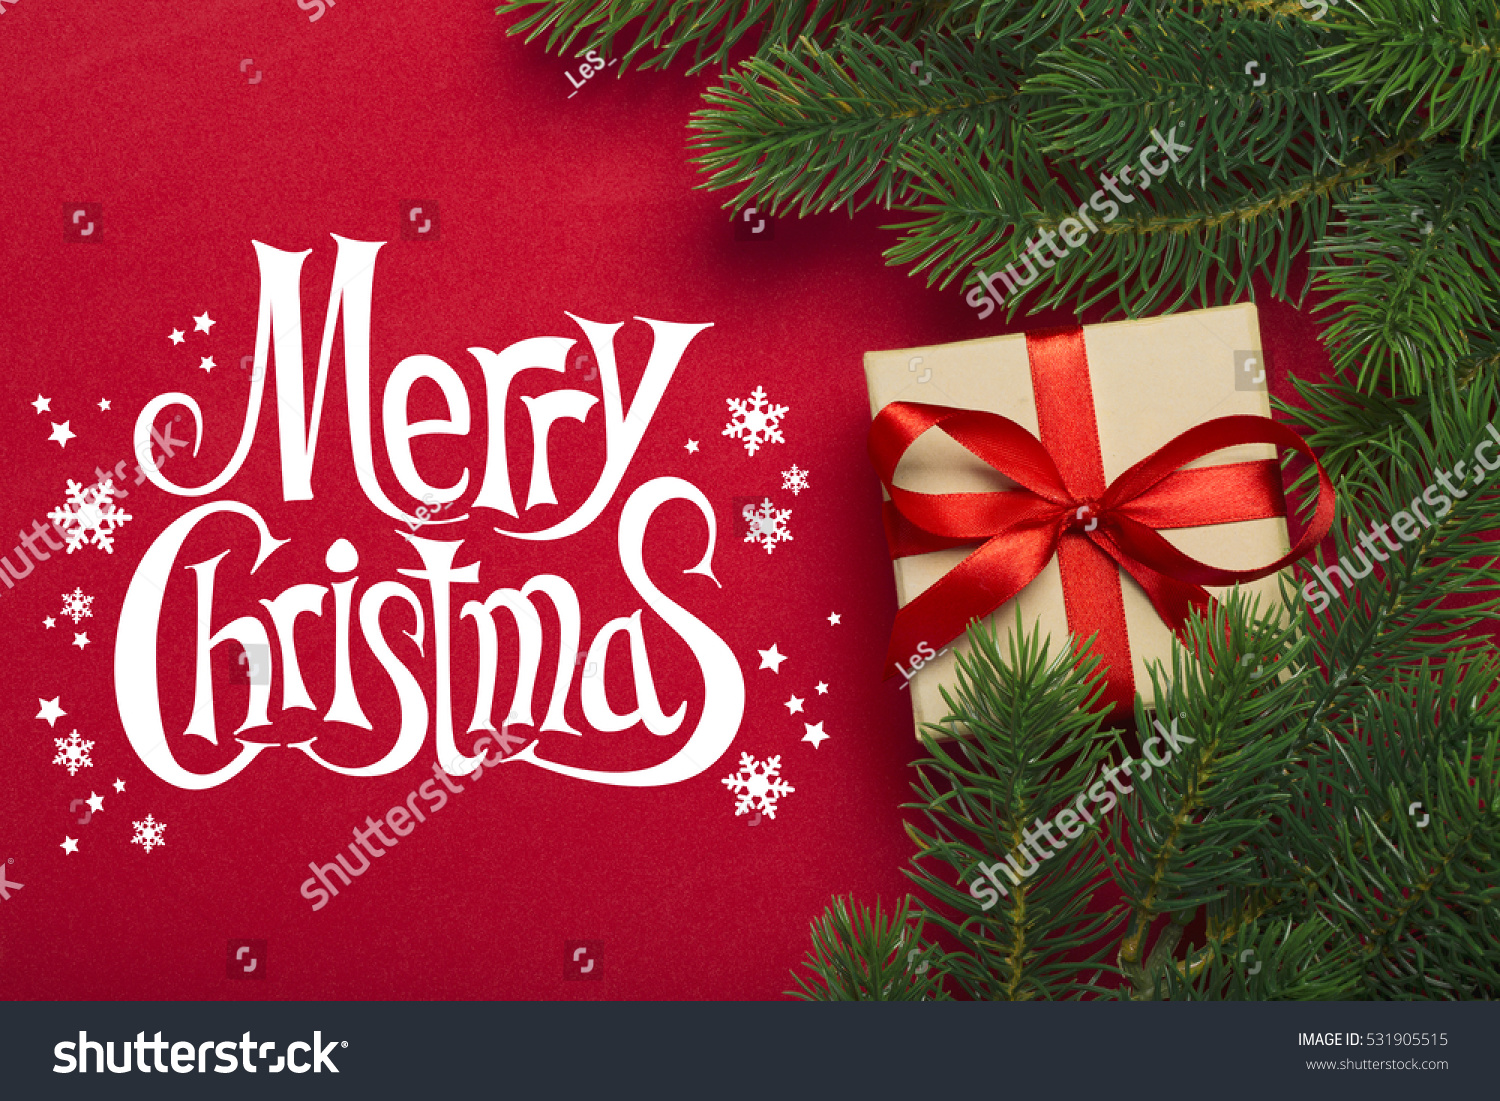 Red Christmas Background With Xmas Tree And Gifts: Branches Christmas Tree Gift On Red Stock Photo 531905515